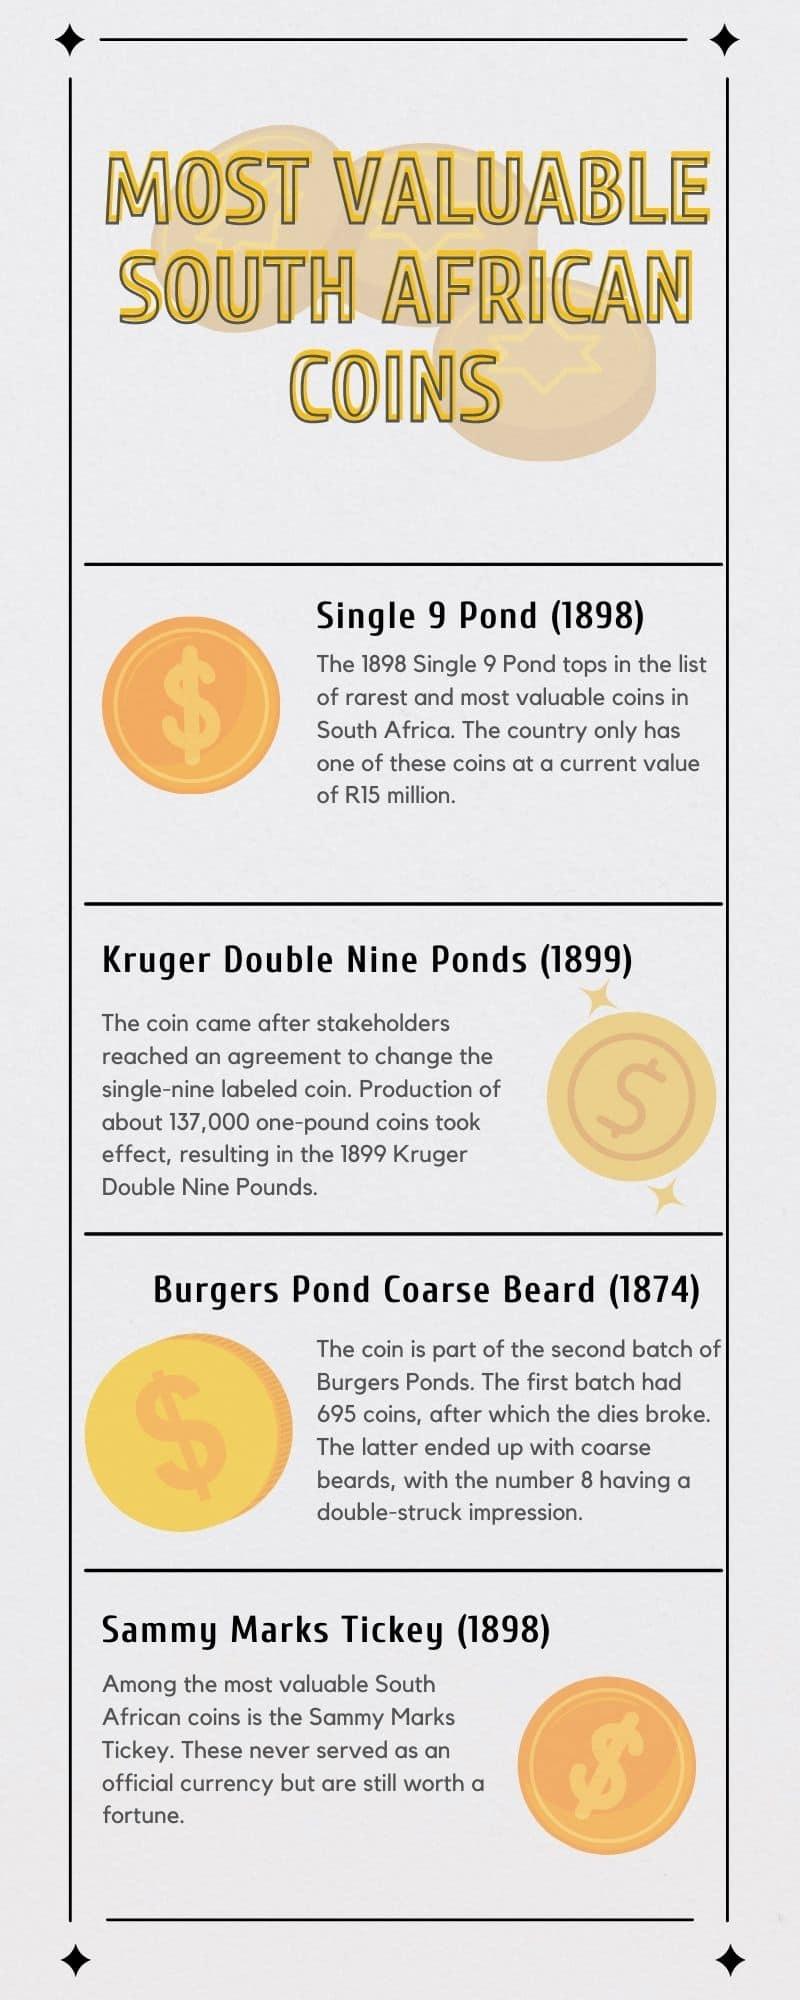 Most valuable South African coins